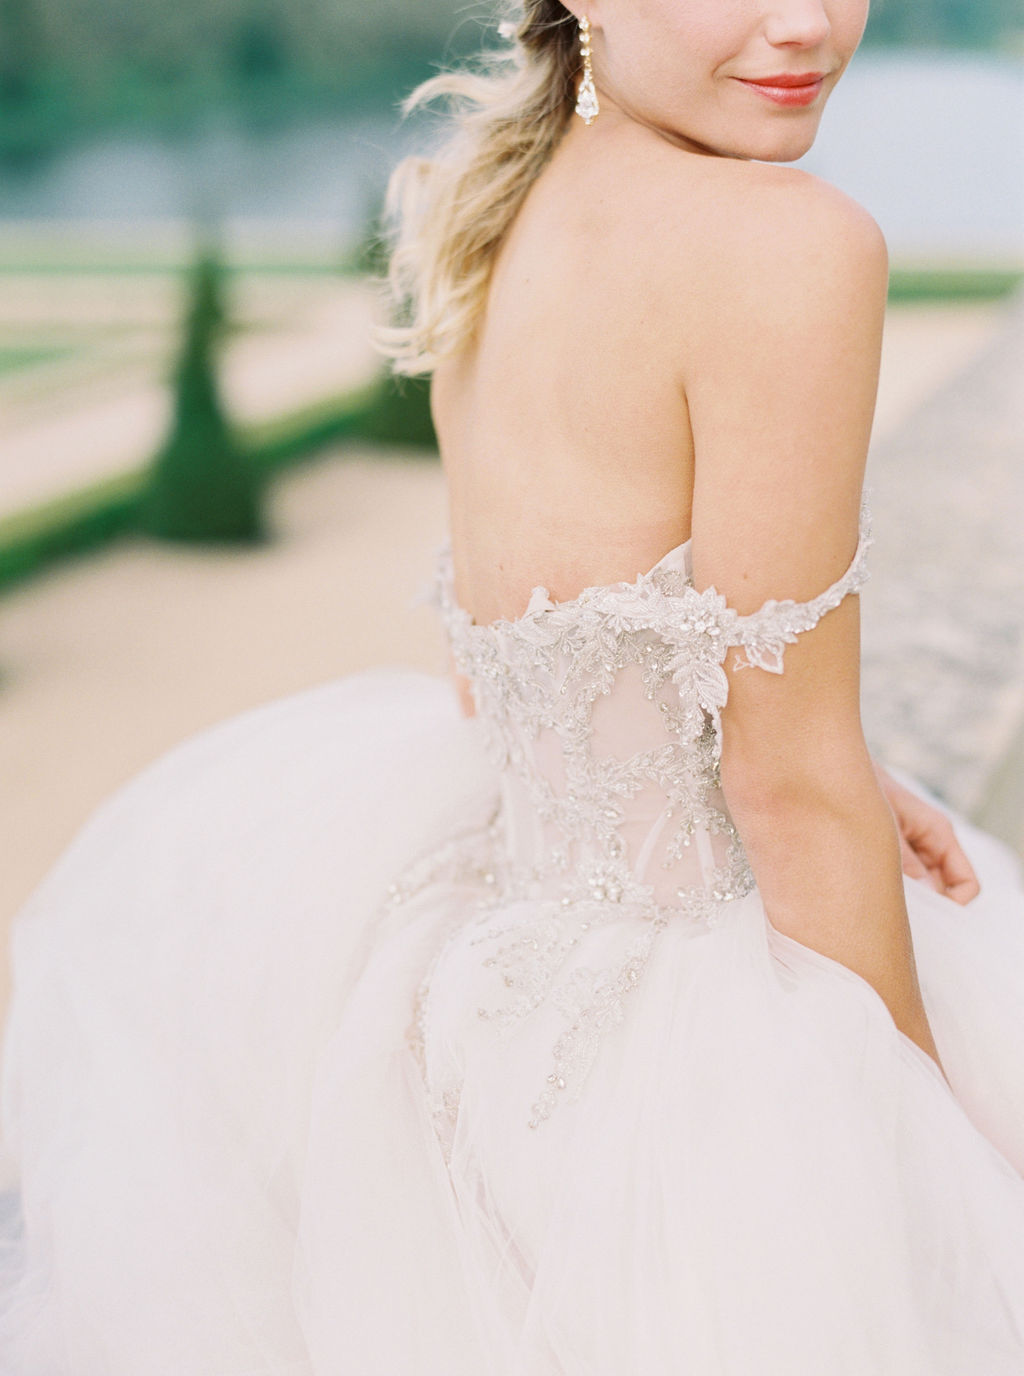 travellur_photoshoot_duchesse_de_villette_model_beauty_wedding_chateau.jpg